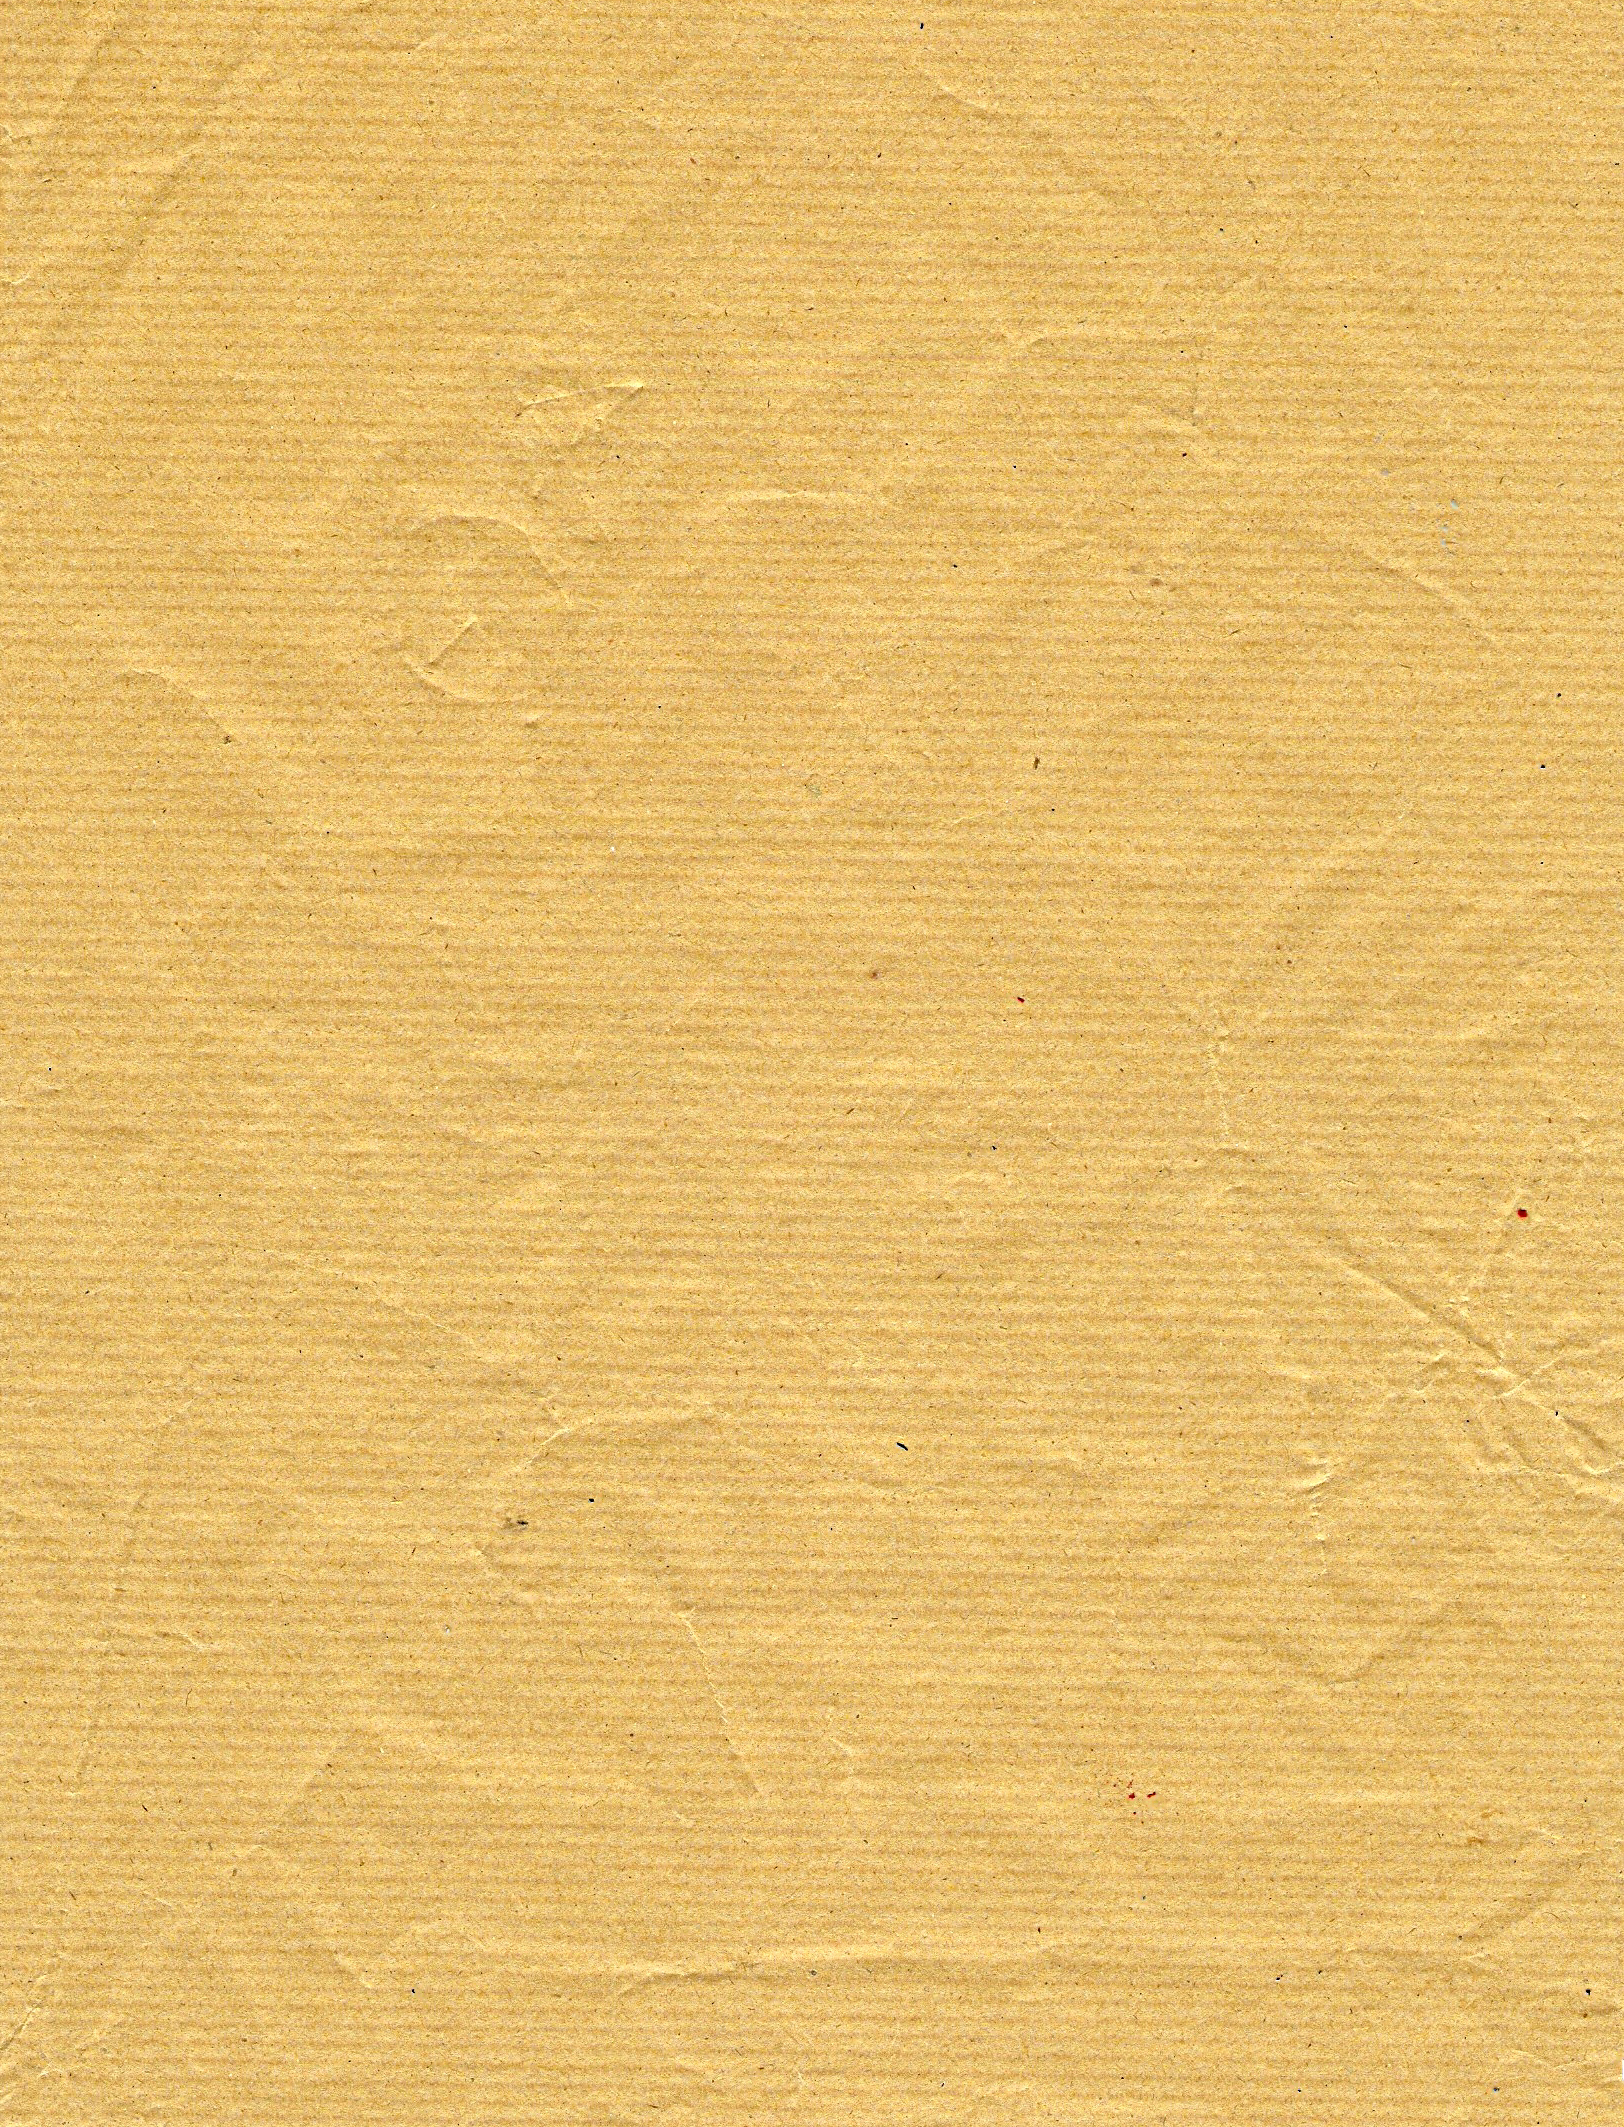 paper texture backgrounds